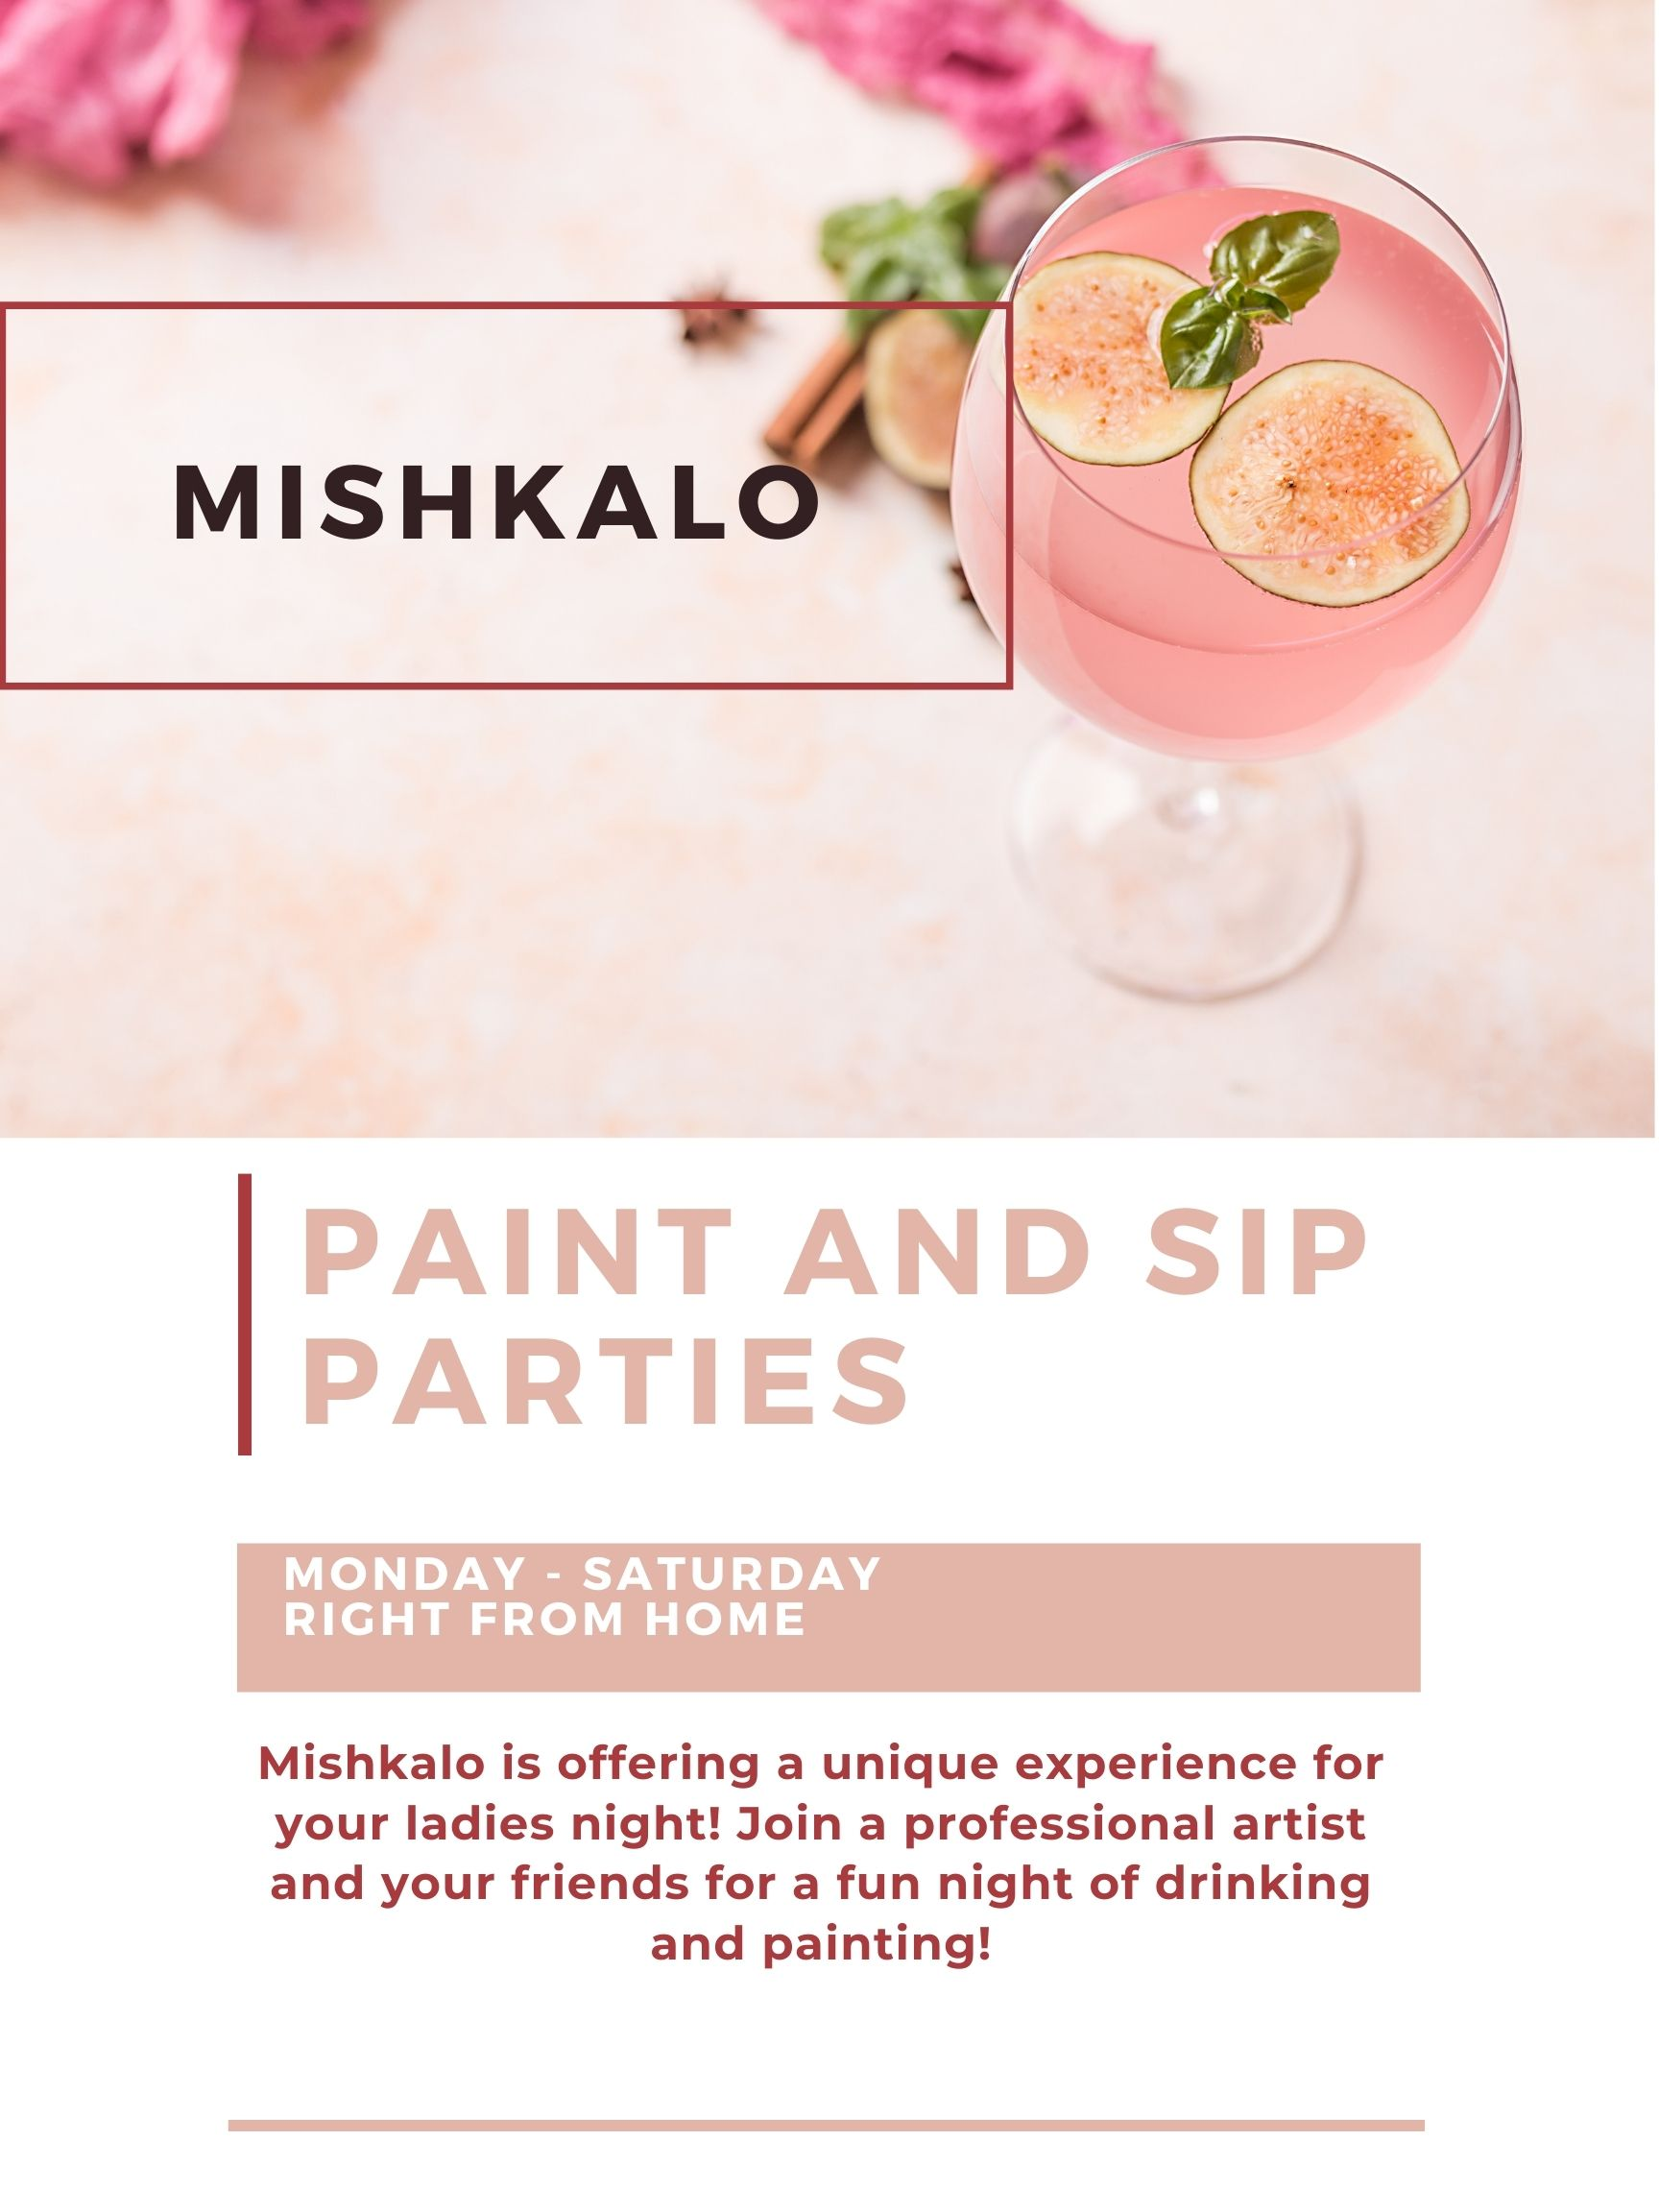 Ladies Night | Paint and Sip| Mishkalo